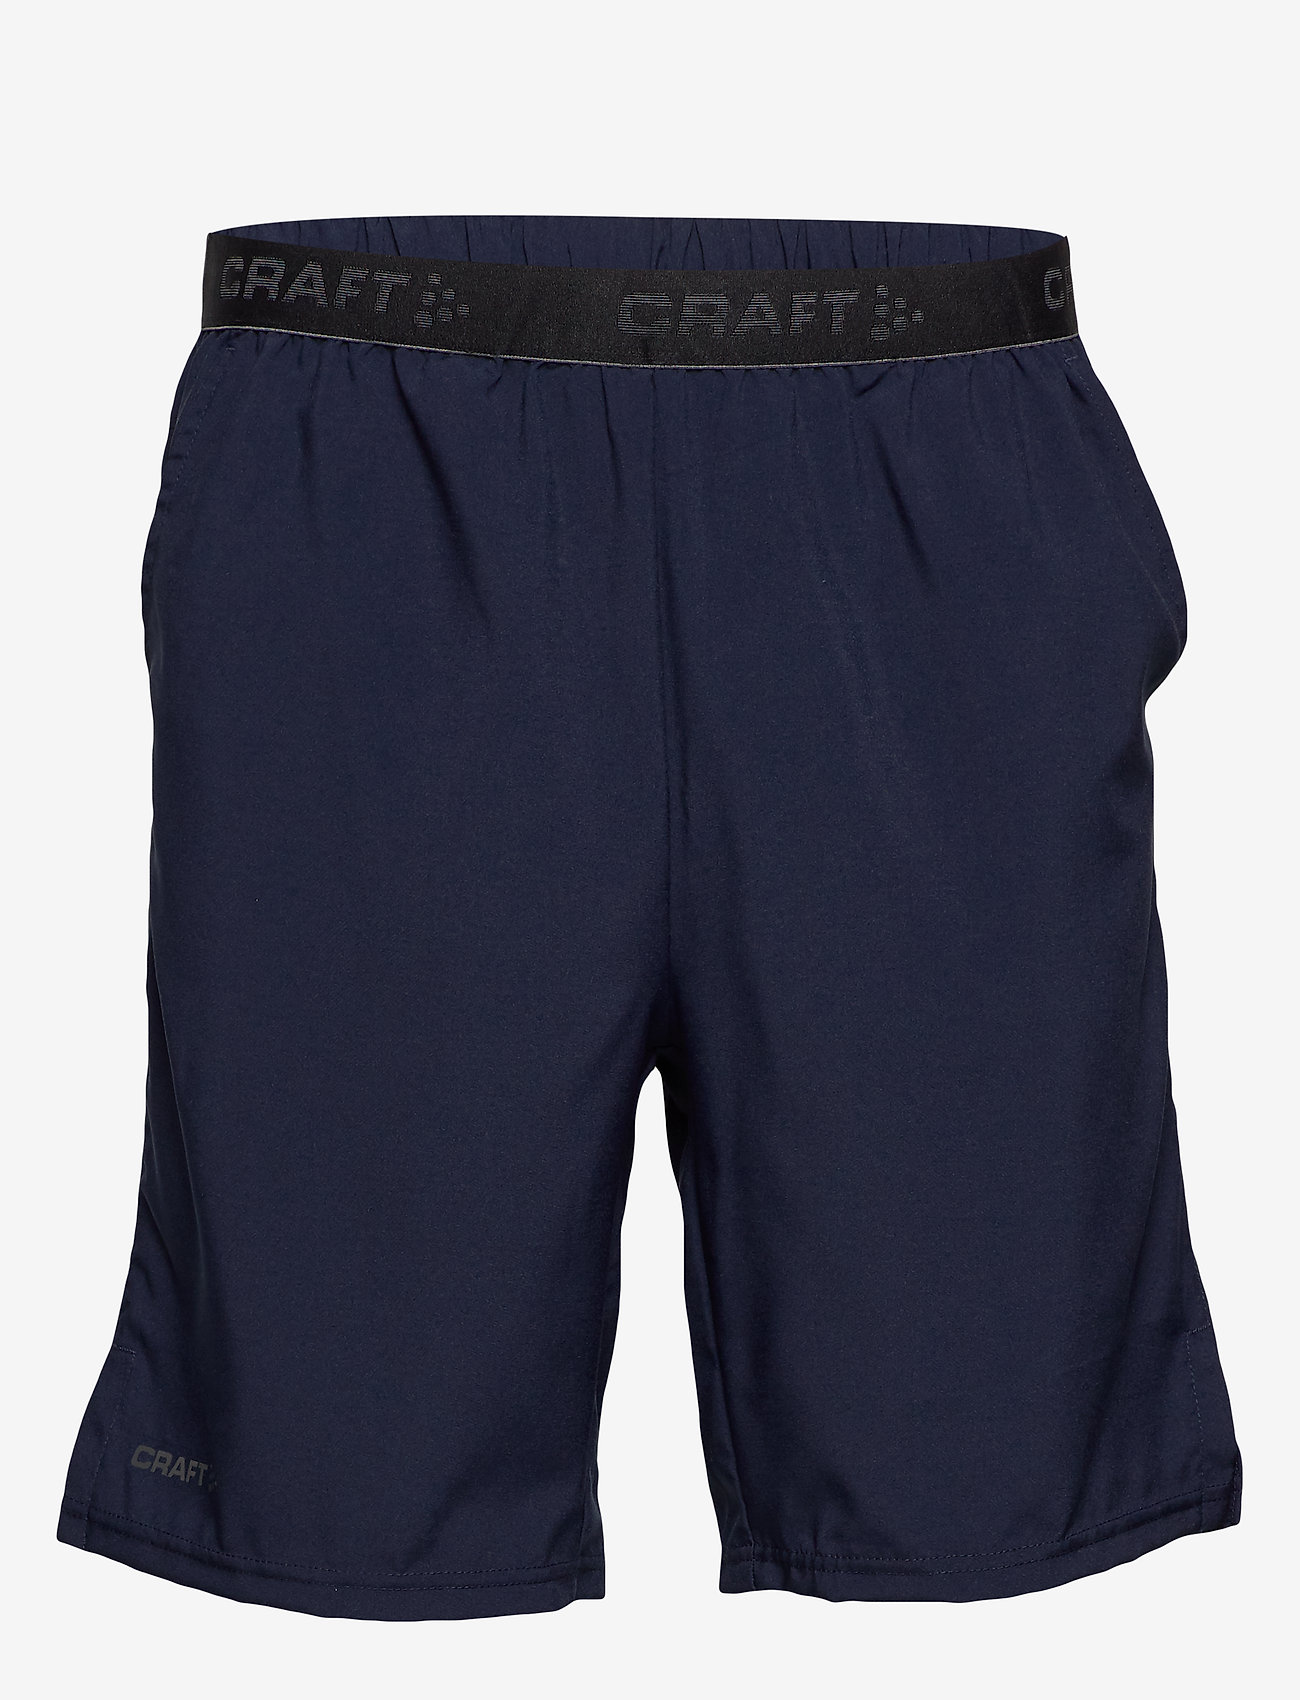 Craft - CORE ESSENCE RELAXED SHORTS M - chaussures de course - blaze - 0